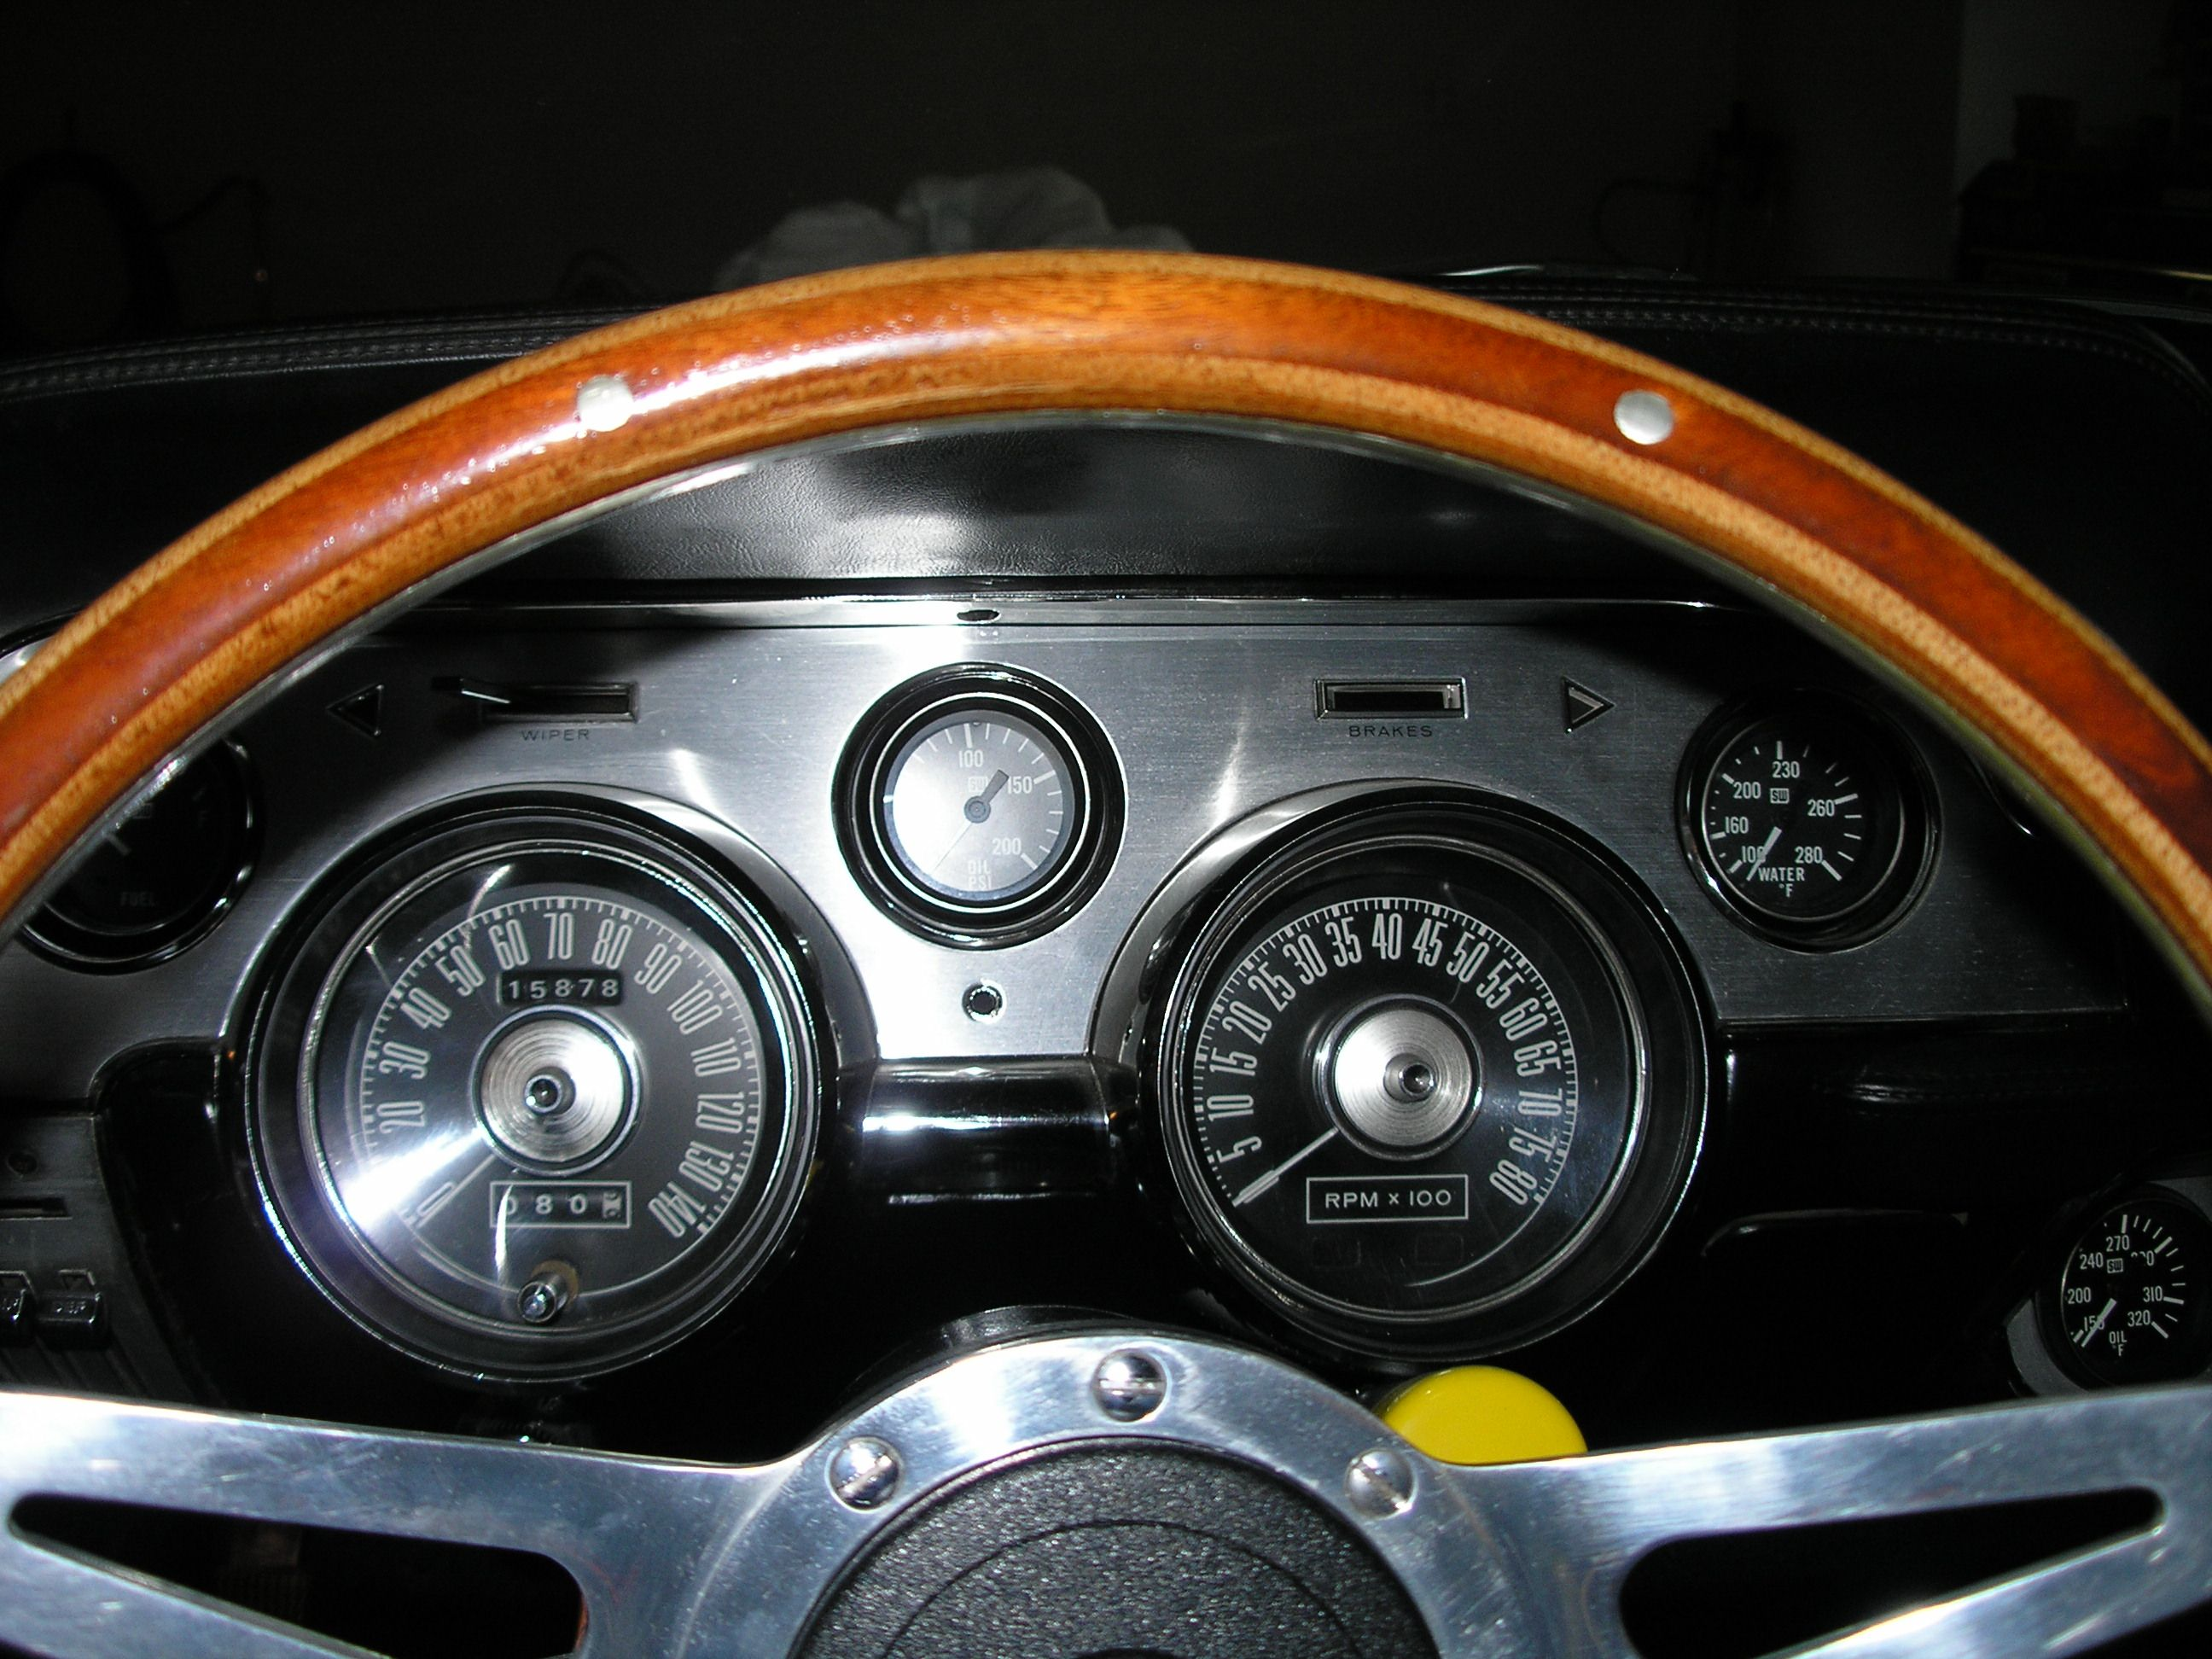 1967 mustang wiring to tachometer | Jim's 1967 Mustang with custom dash and  8000 RPM GT tachometer .